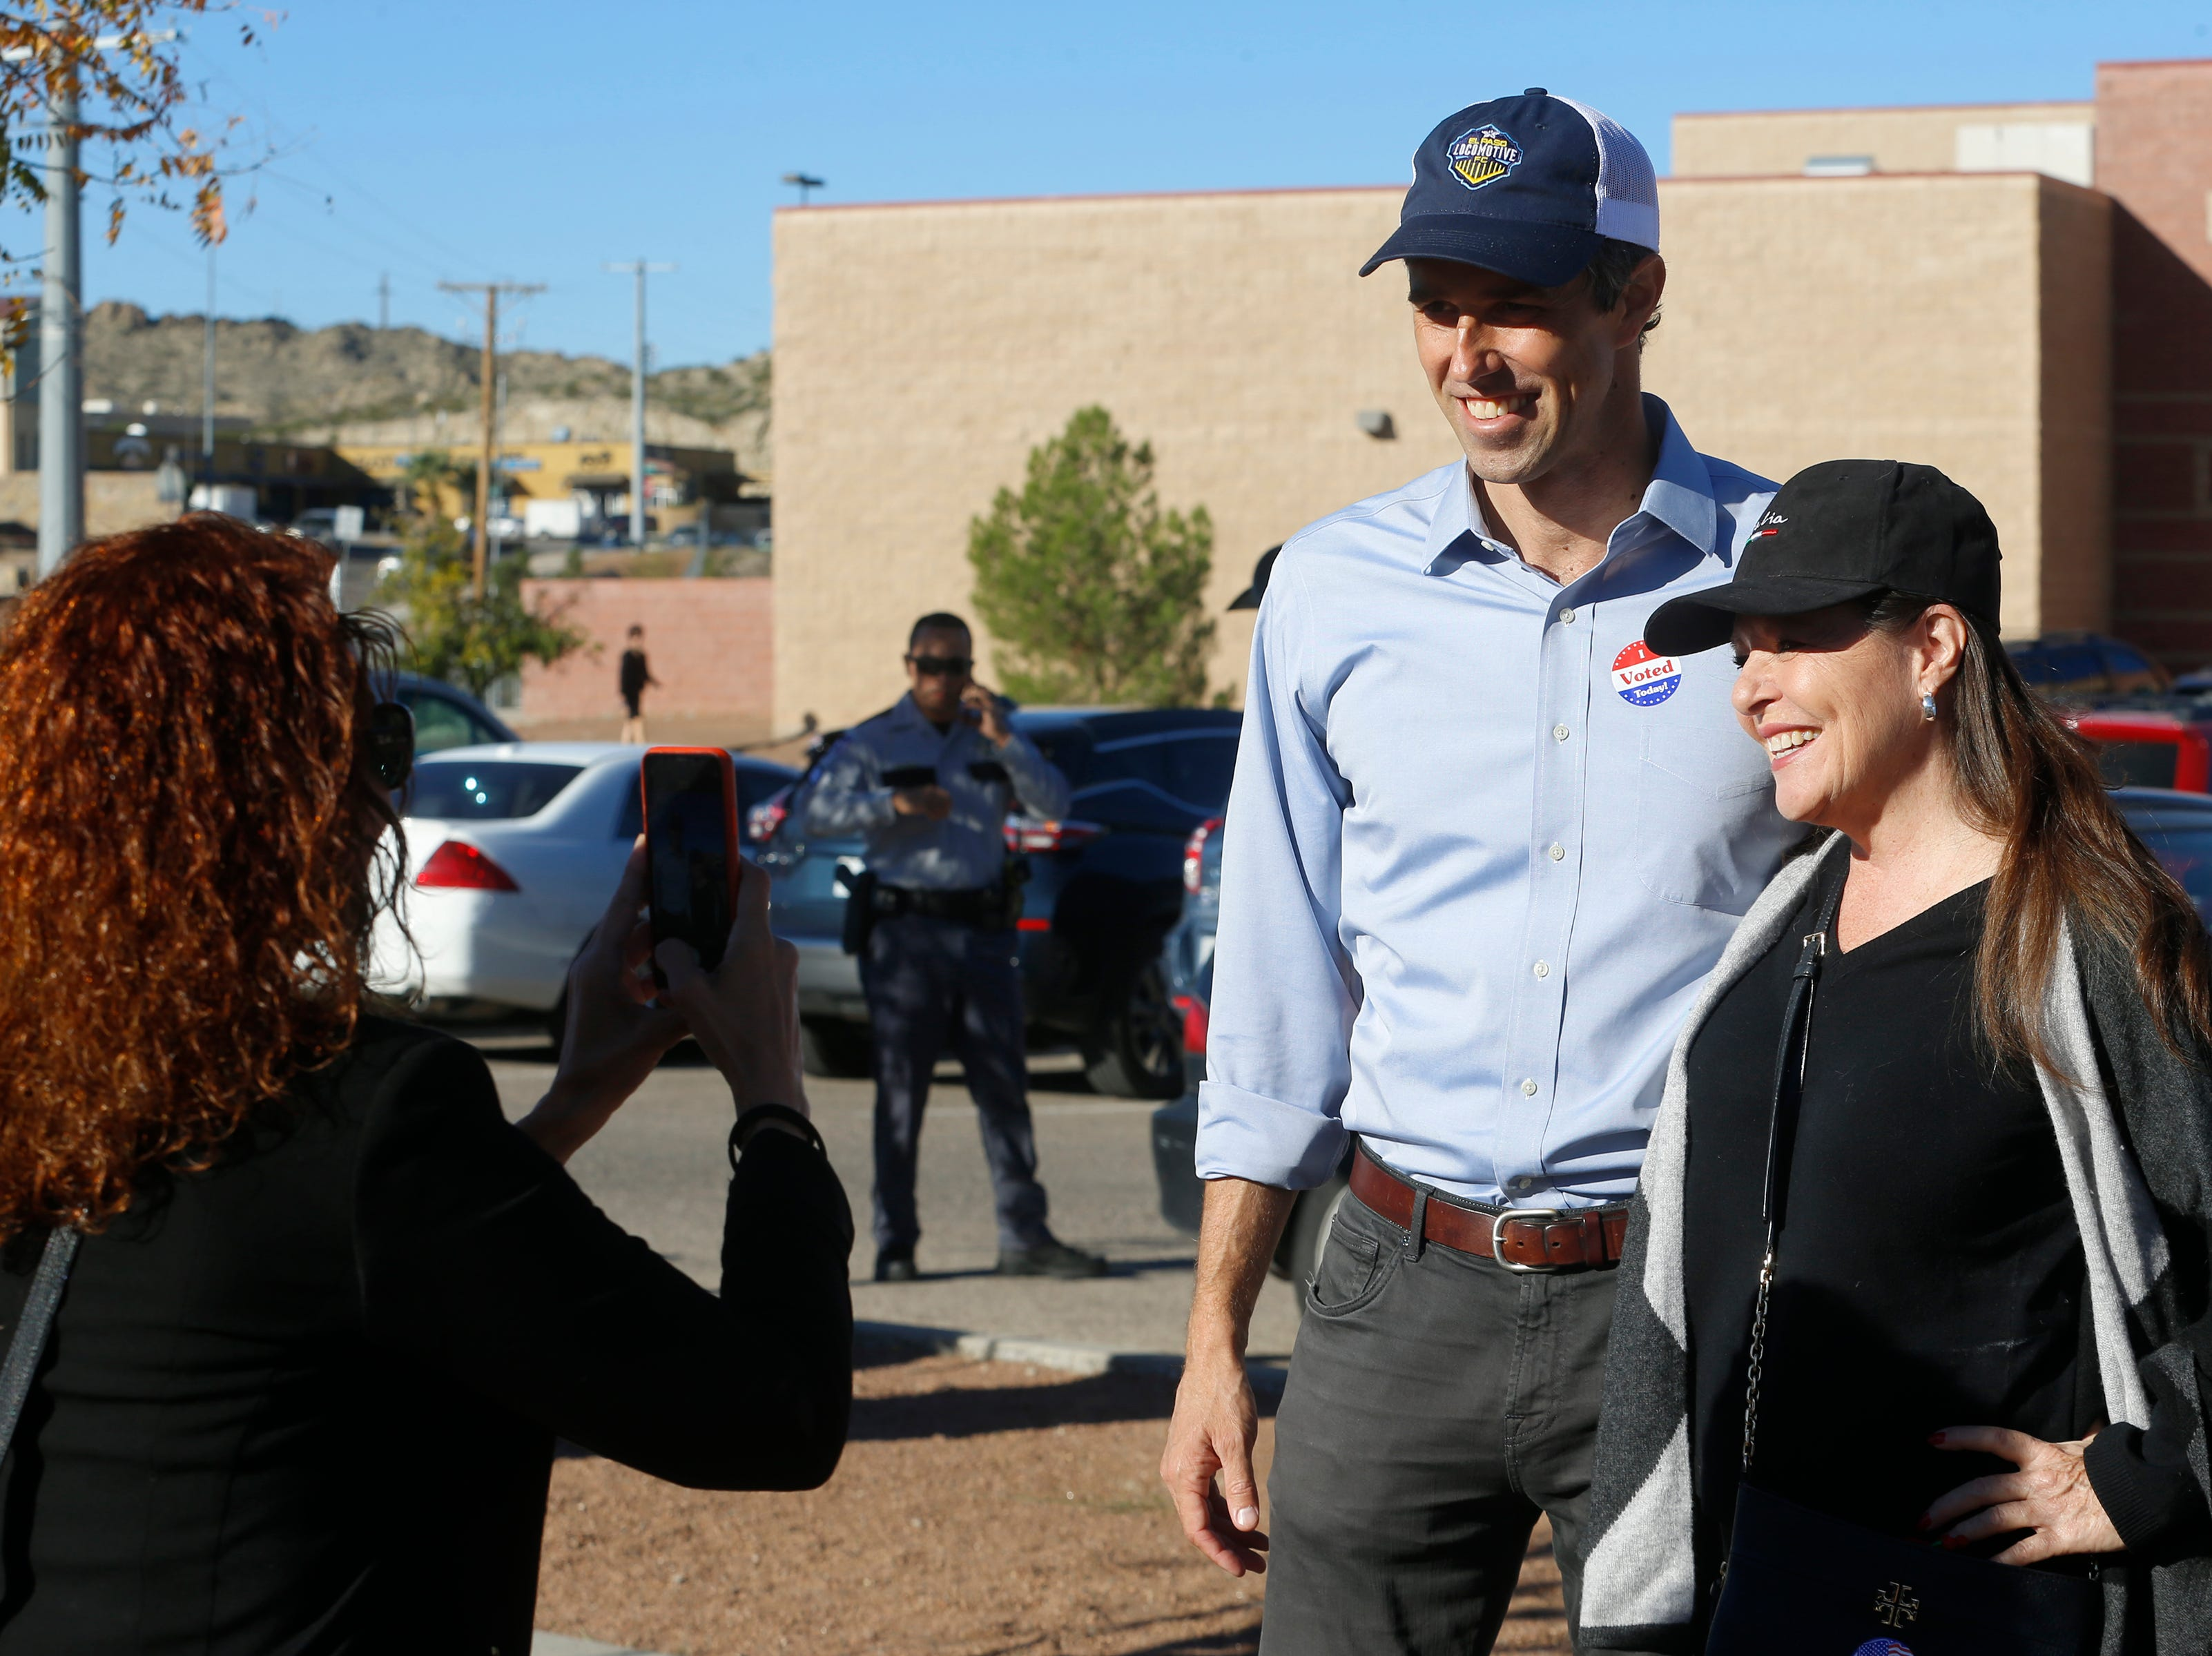 U.S. Rep. Beto O'Rourke, who is running to unseat Sen. Ted Cruz, stopped at Mesiat Elementary School to greet volunteers and voters early Tuesday morning. O'Rourke who earlier had walked from his Sunset Heights home in El Paso to vote at the El Paso Community College Rio Grande Campus, was all smiles as voters asked to tae pictures with him.